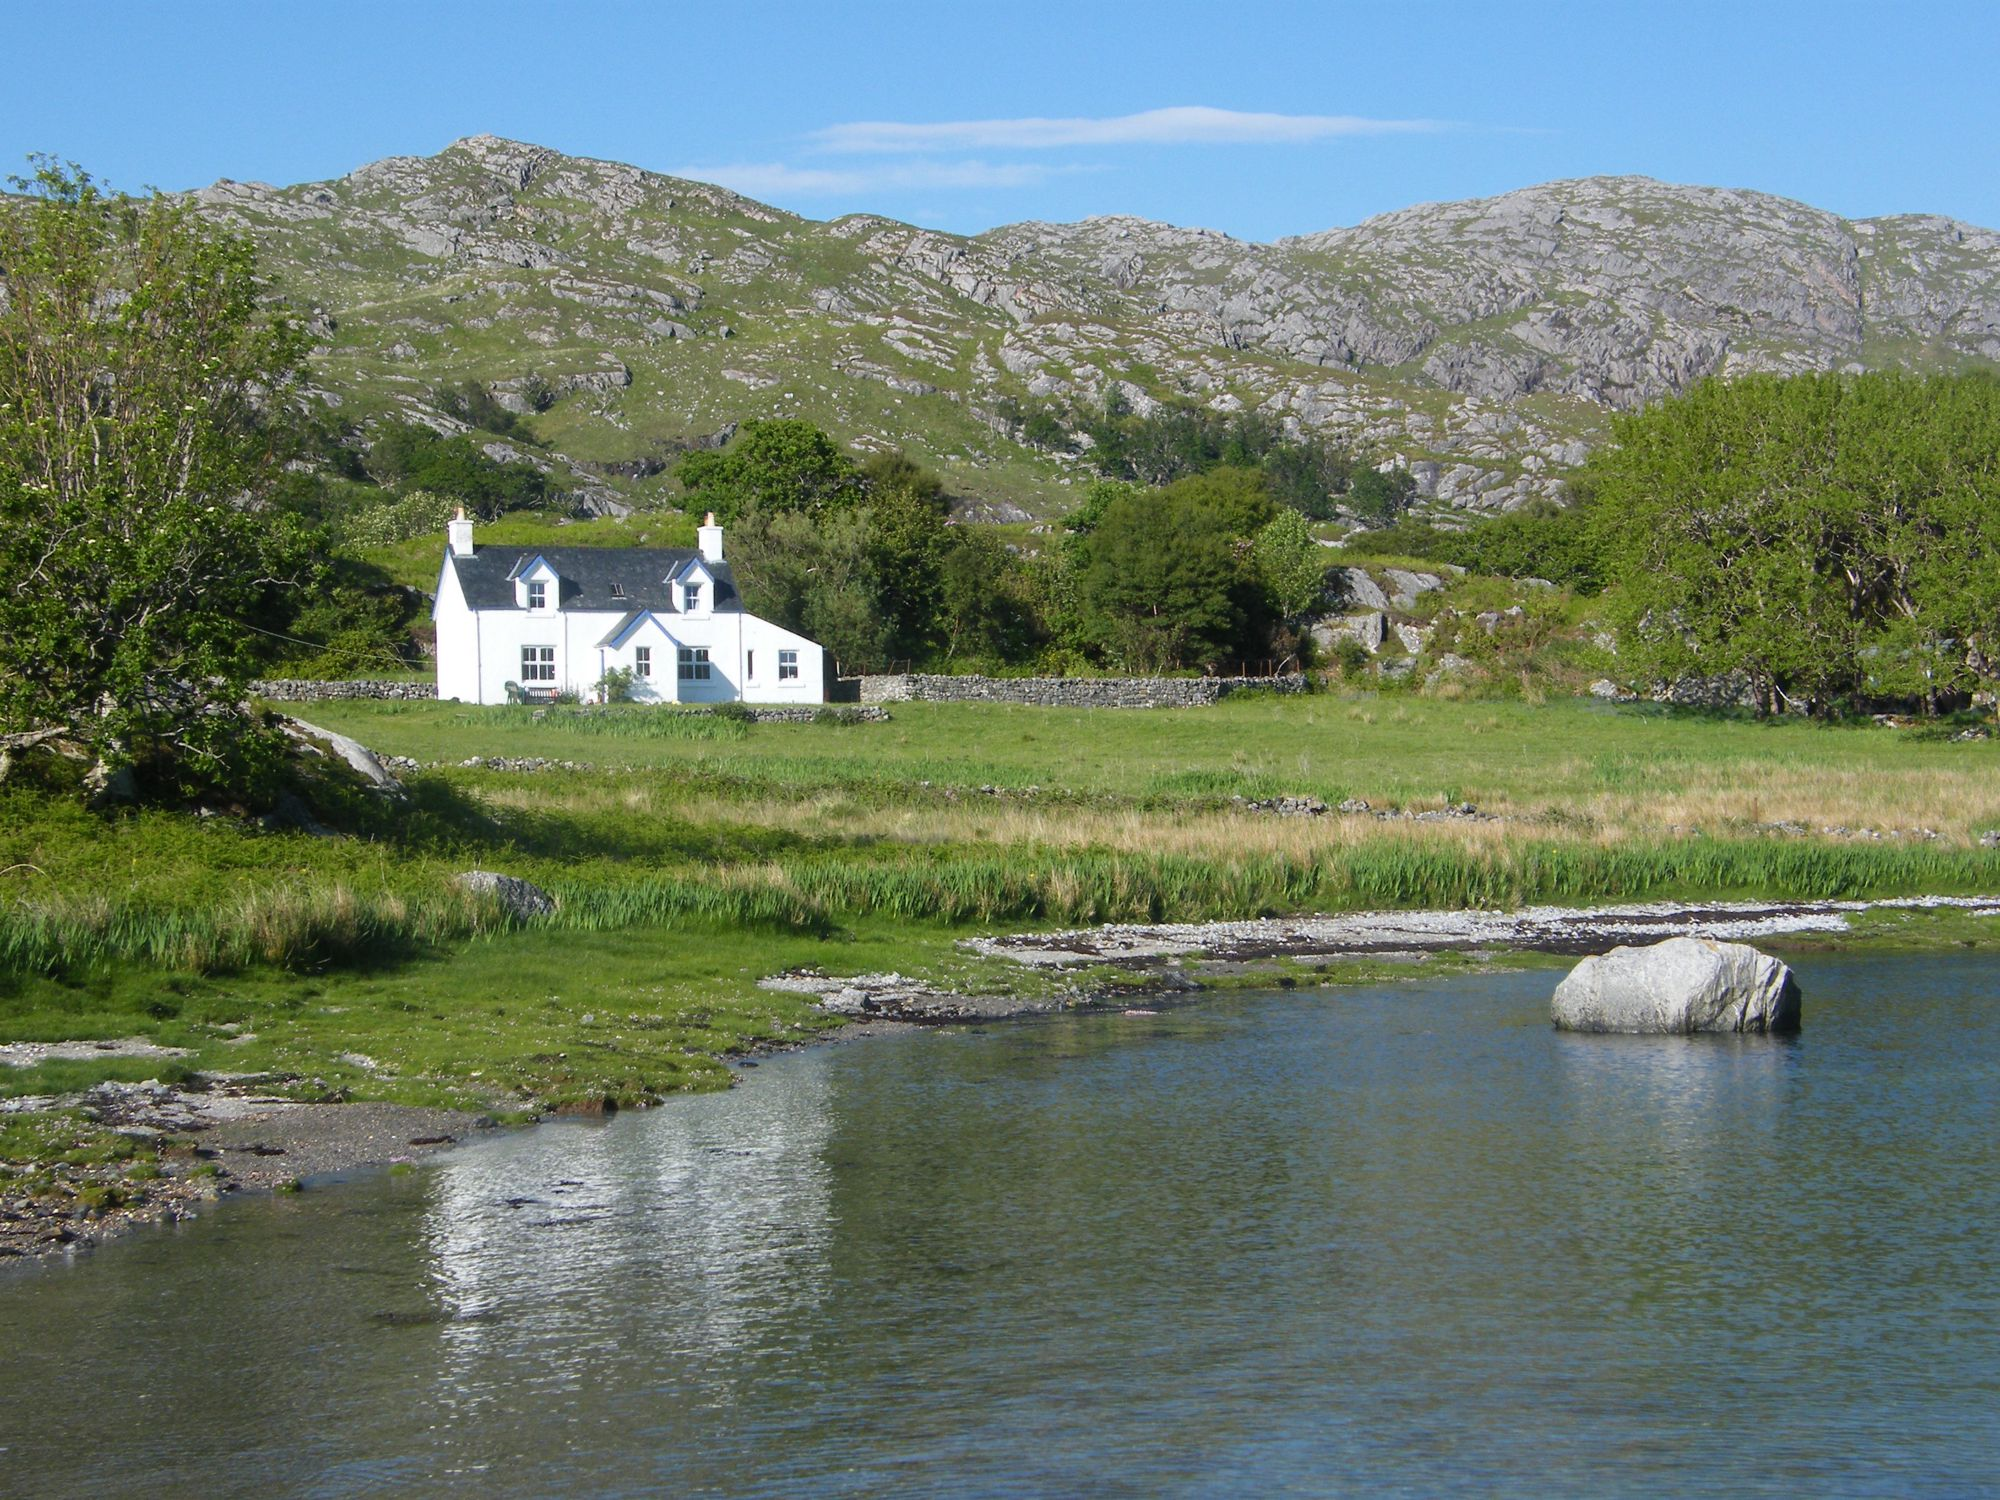 Remote UK Cottages - best off-the-beaten-track holiday cottages - Cool Places to Stay in the UK